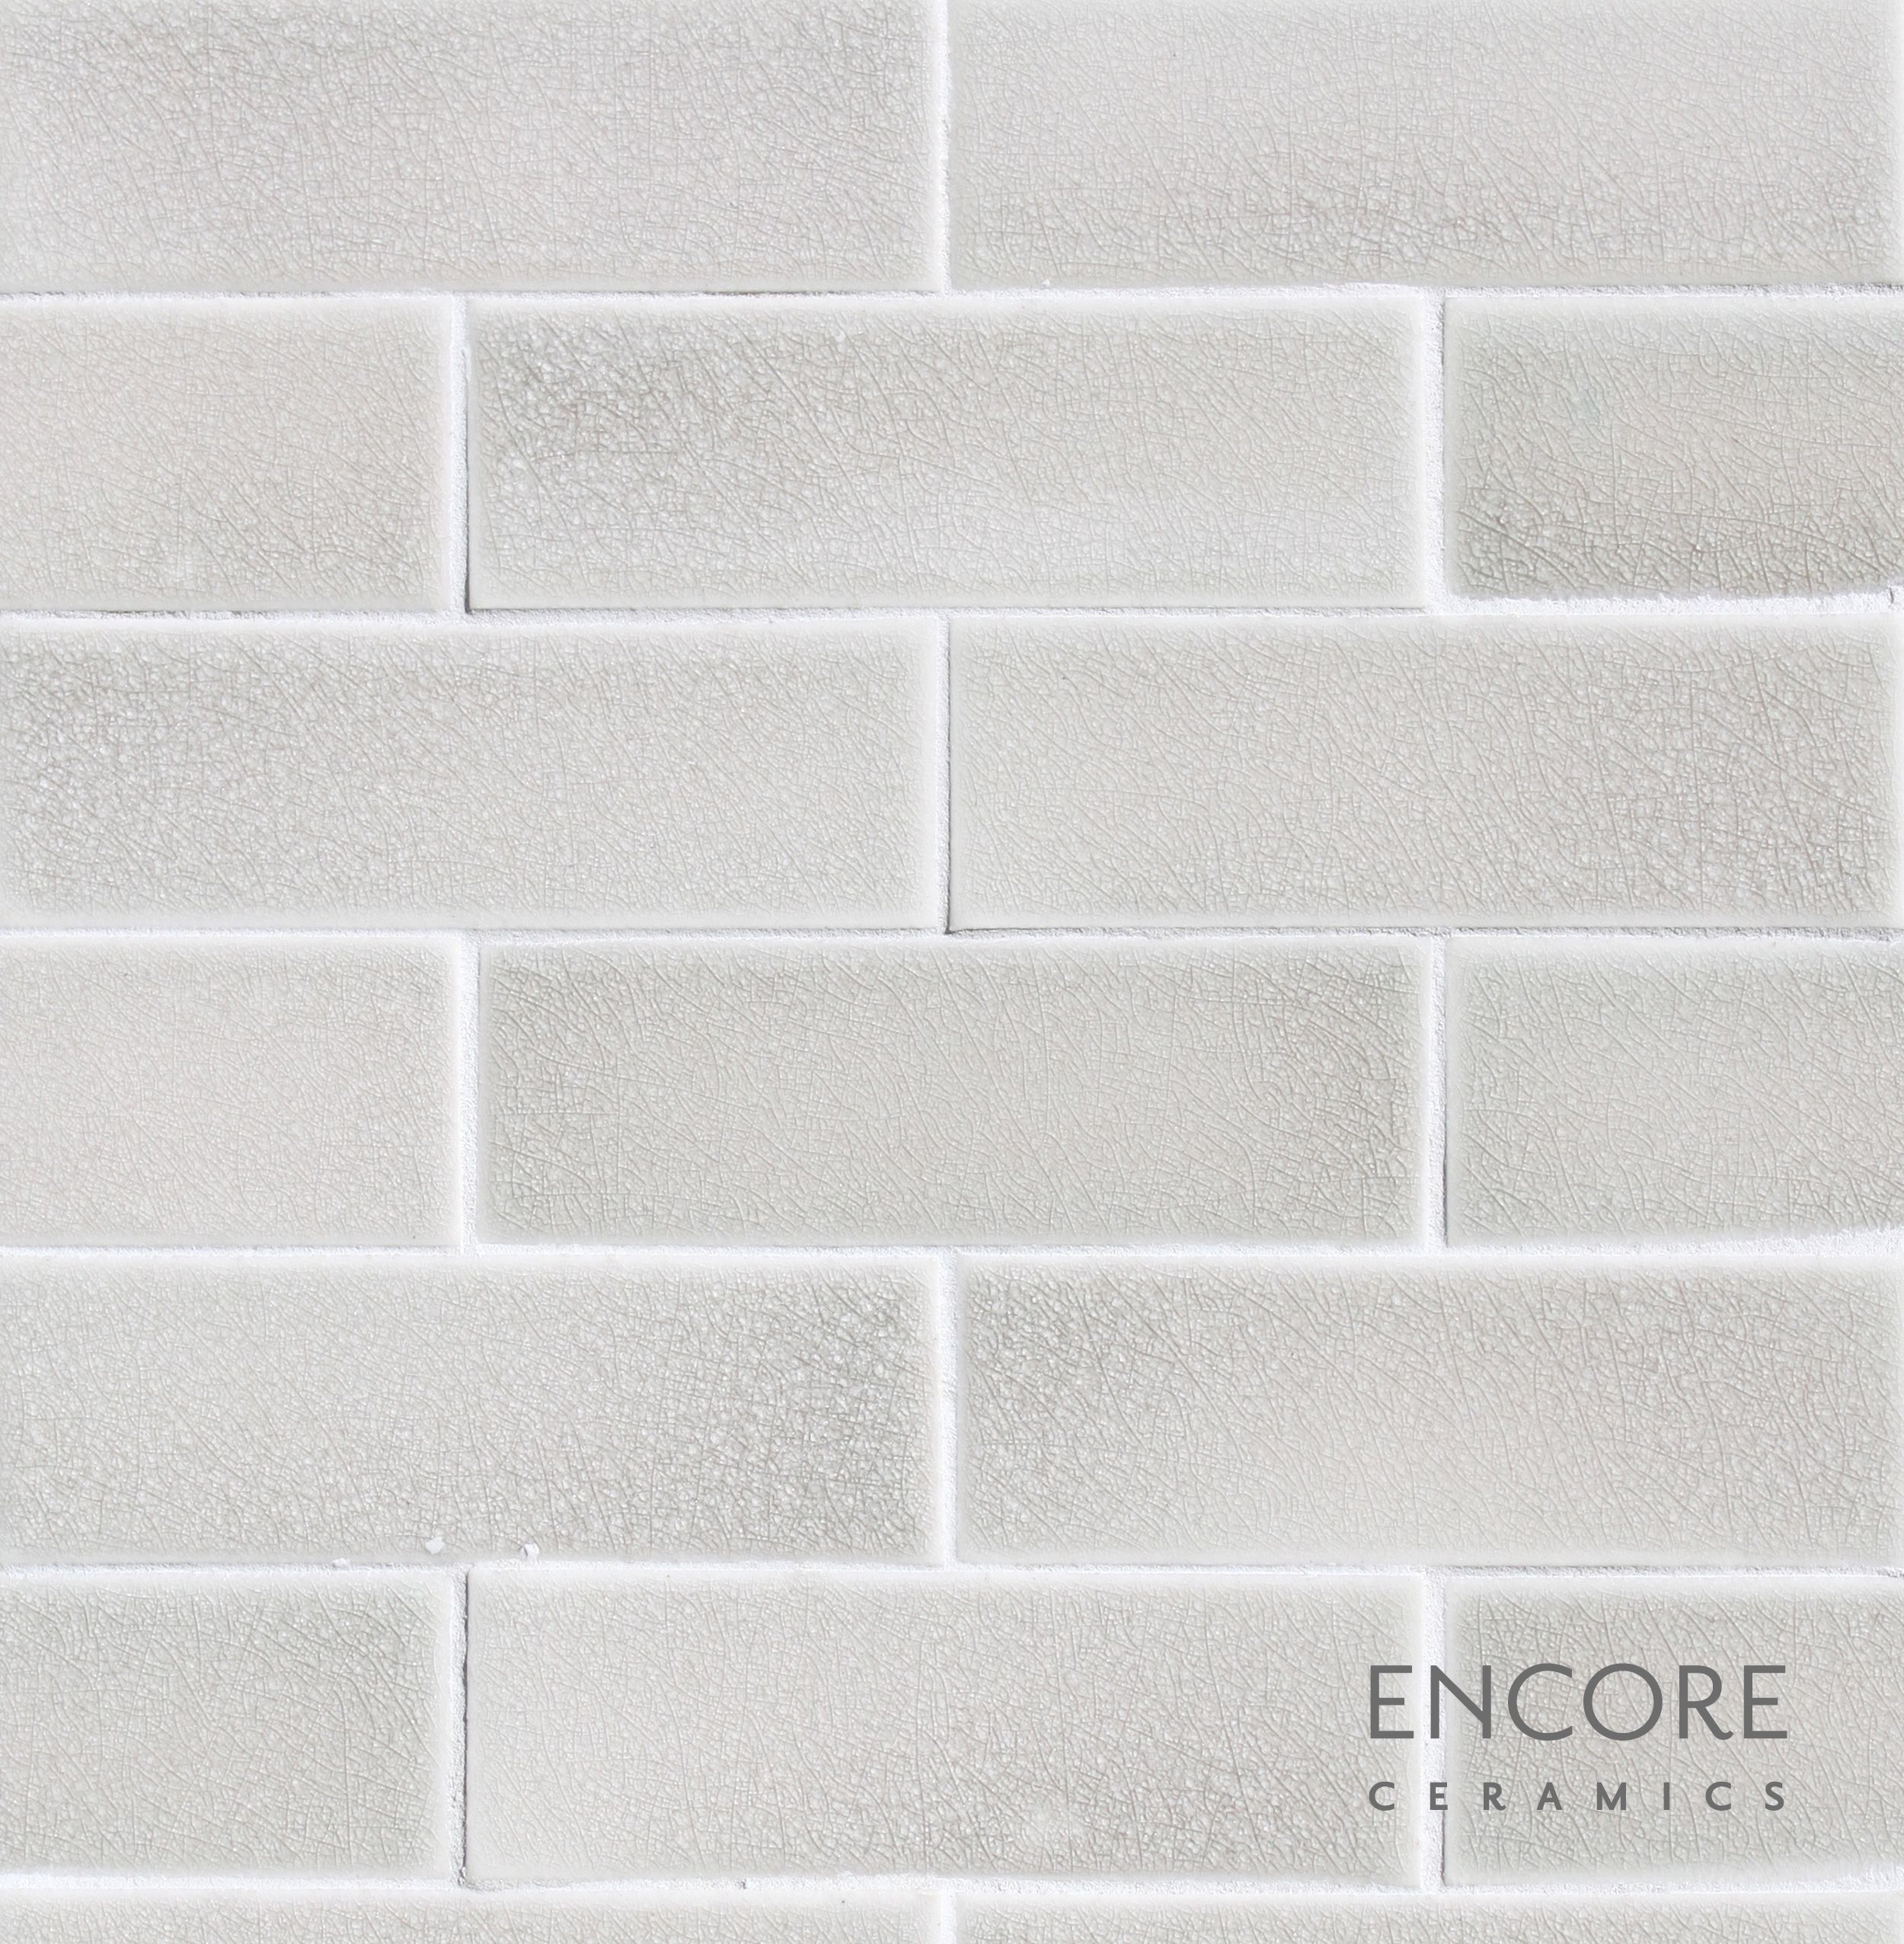 - Encore Ceramics 2 X 6 Field Tile Hand-glazed In Silver Crackle